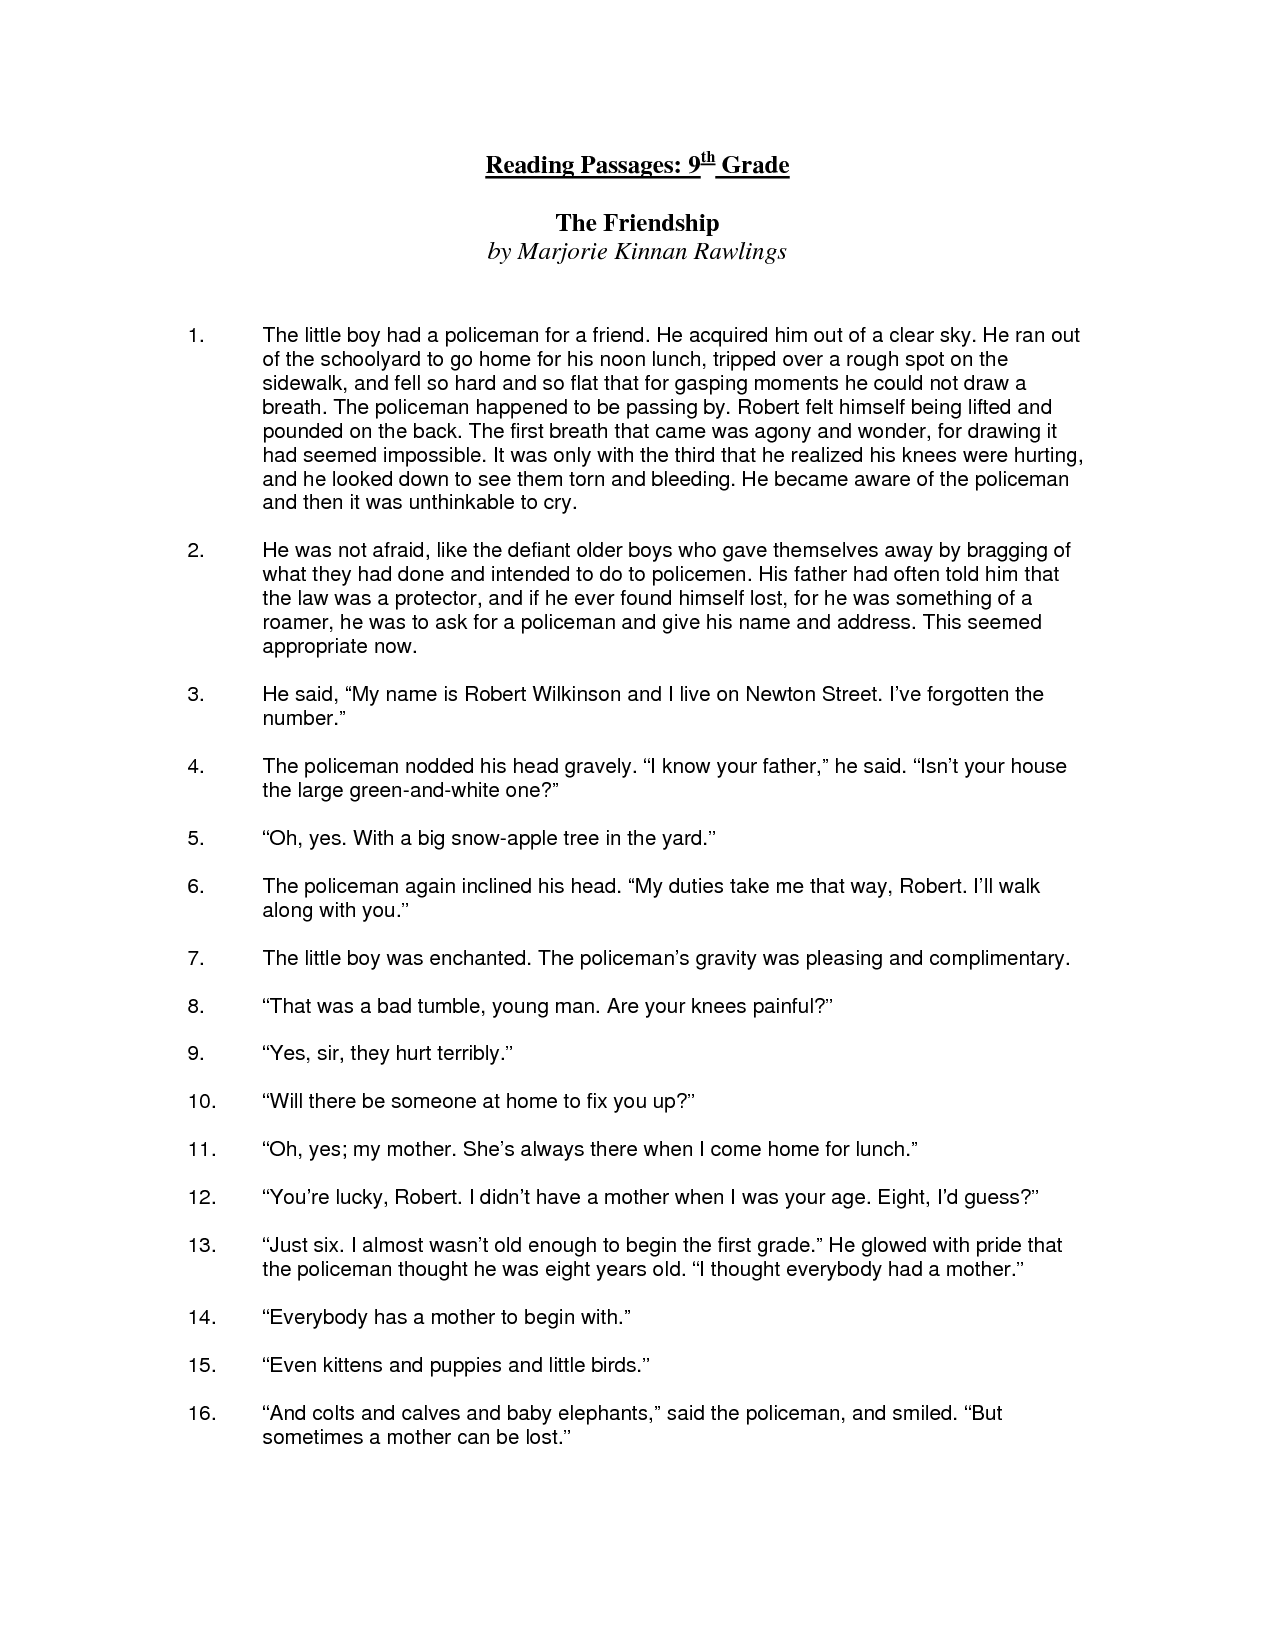 Printables 9th Grade Grammar Worksheets Beyoncenetworth Worksheets Printables